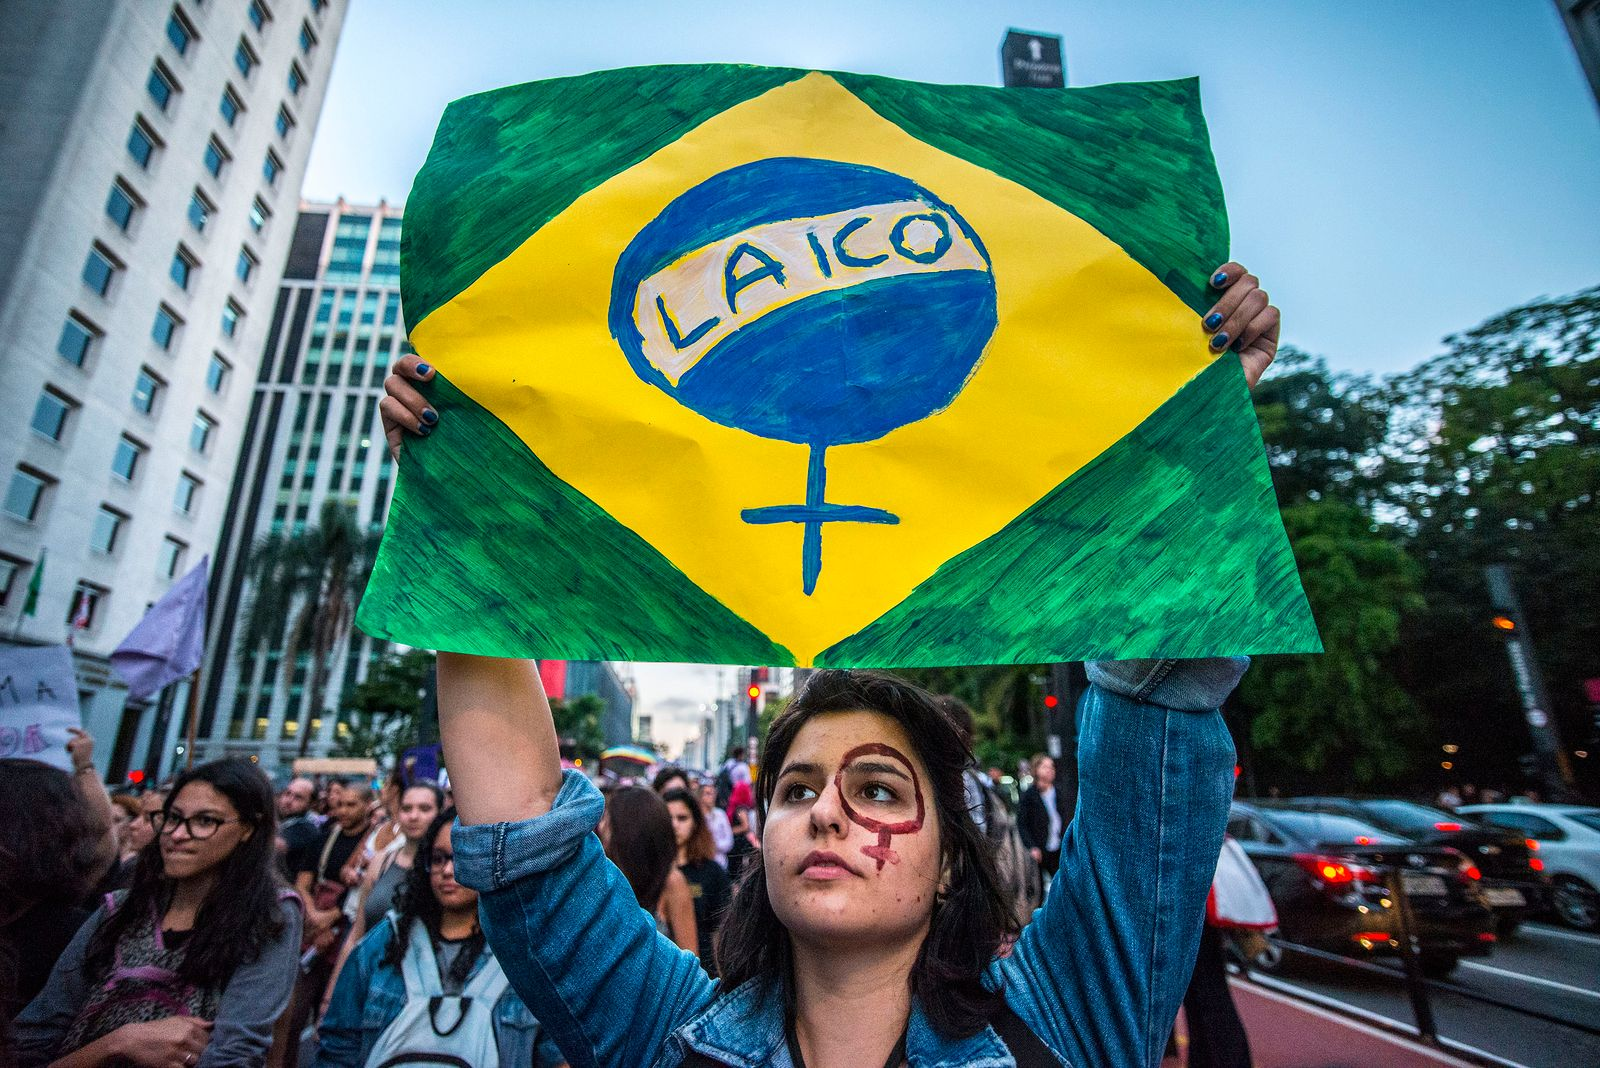 Brazilian Committee Votes To Ban All Abortions, Even In Cases Of Rape